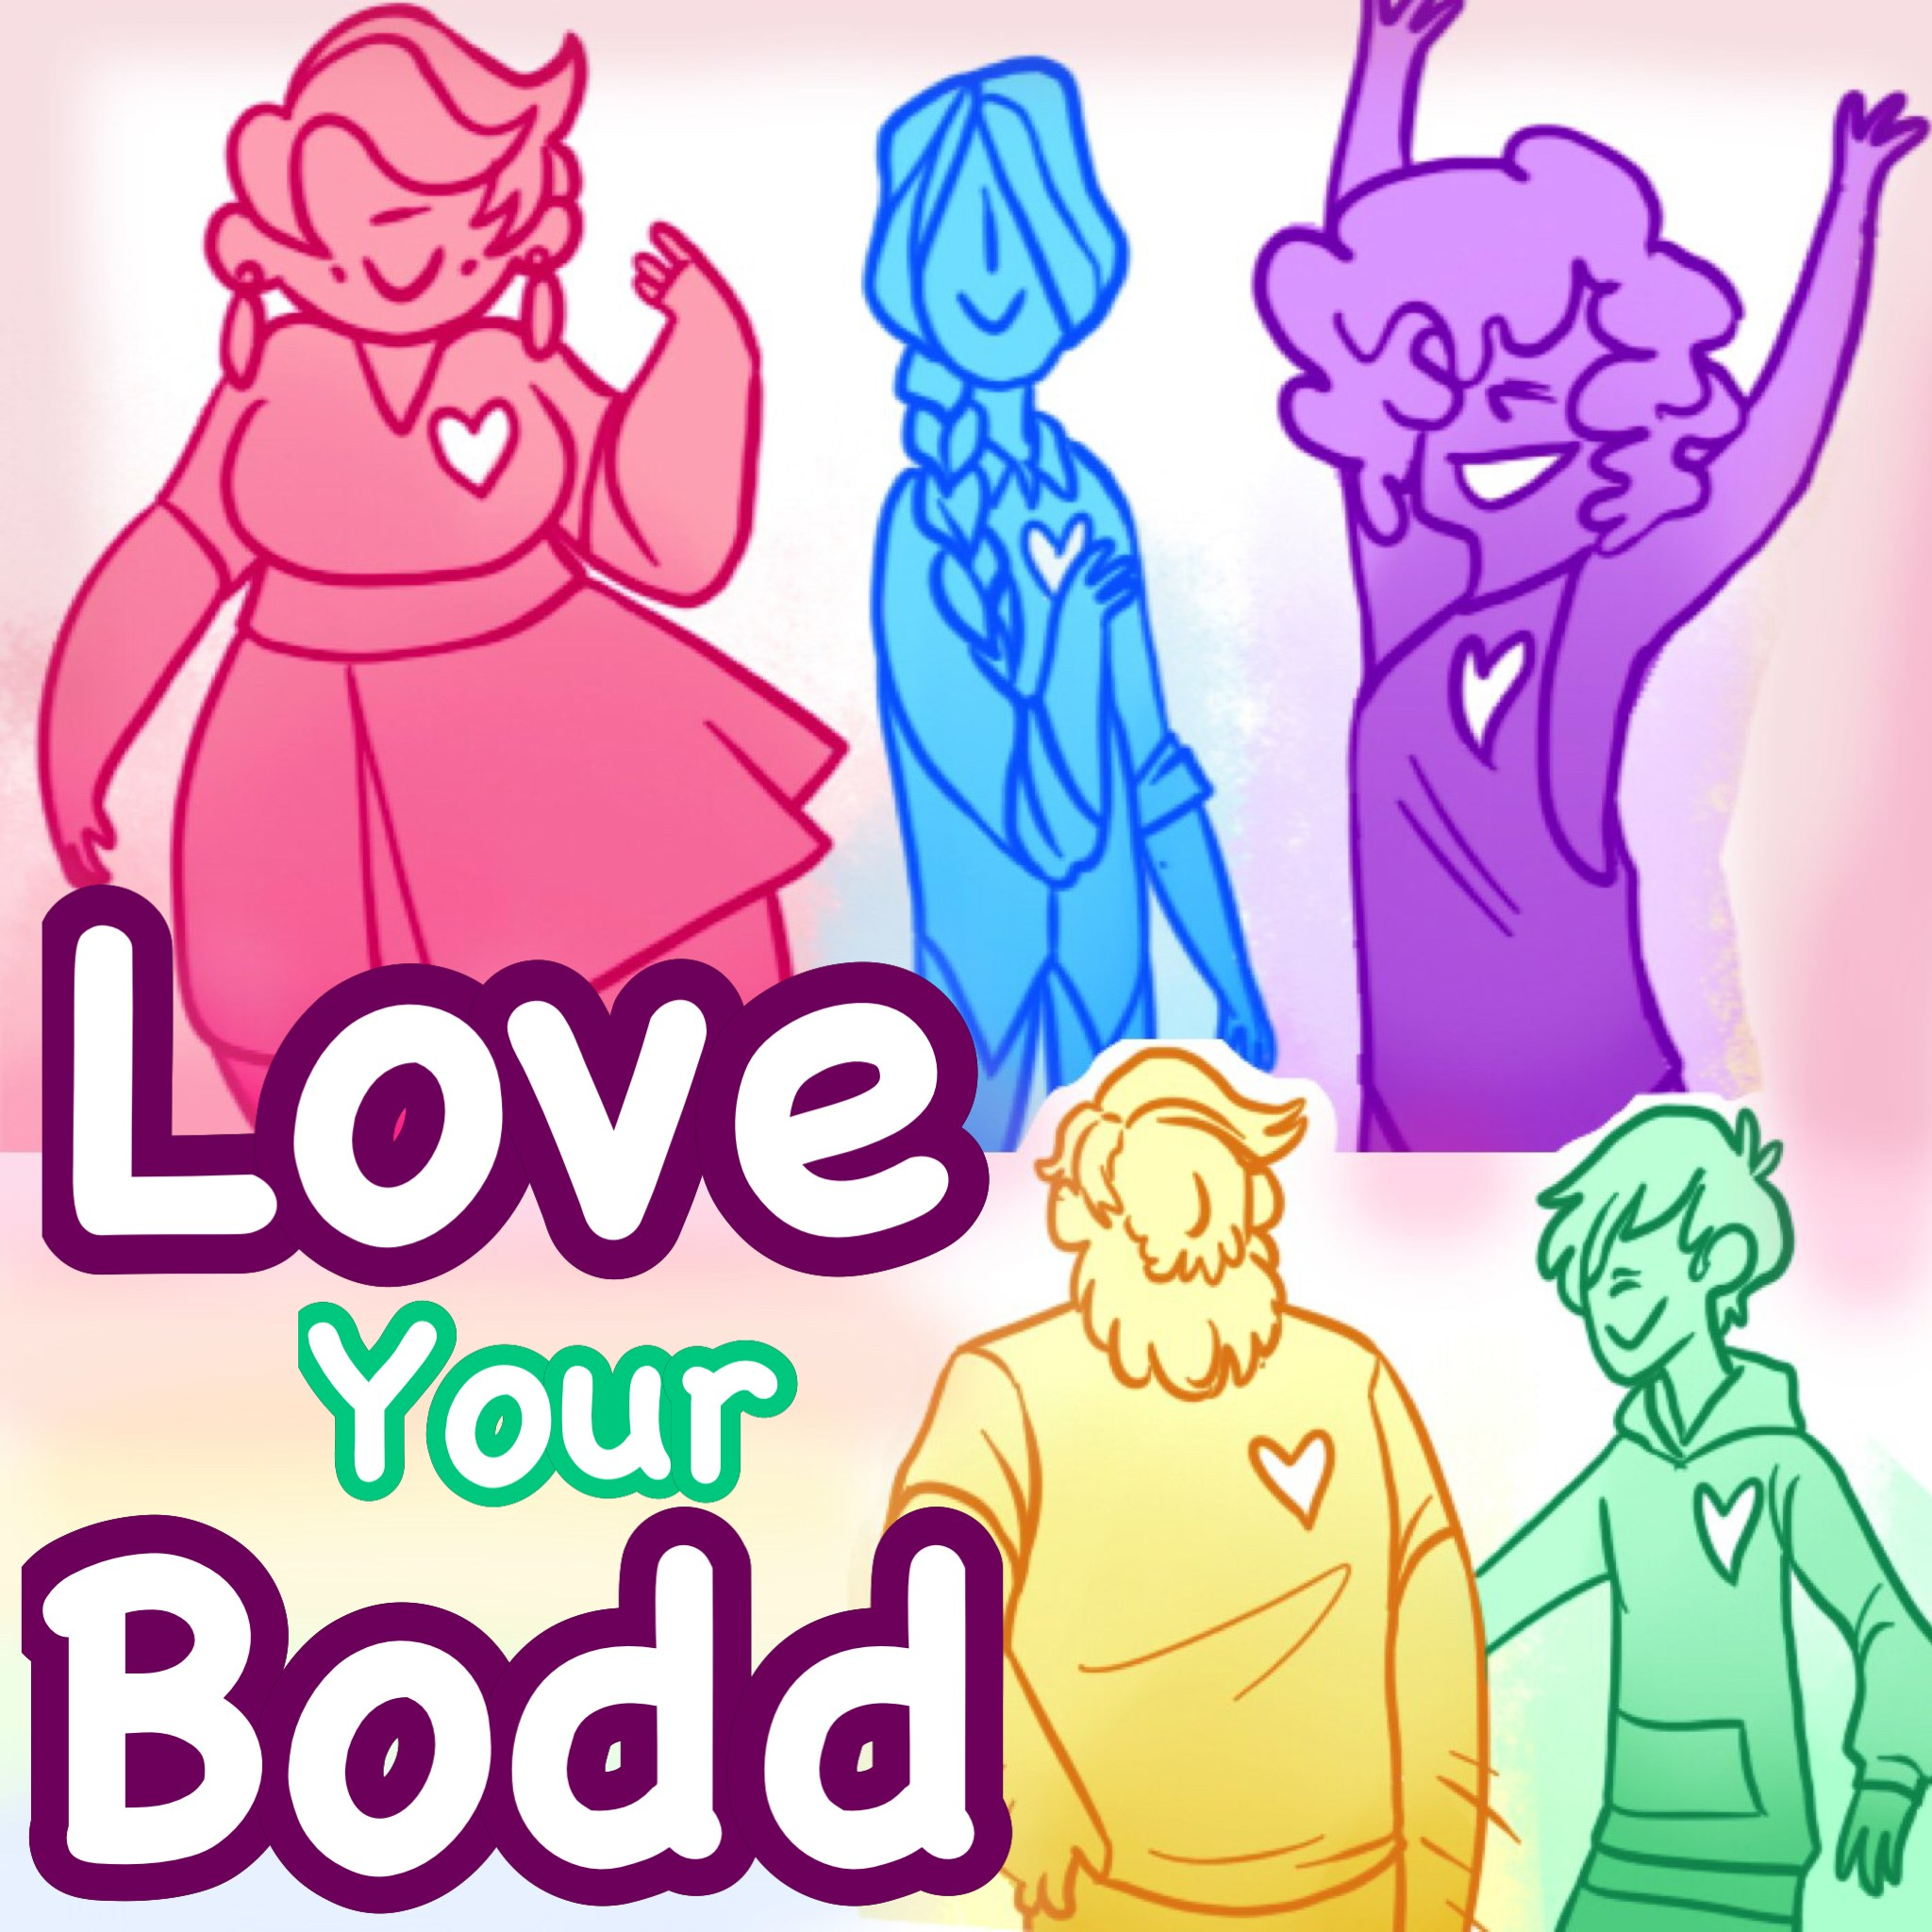 Love Your Bodd show art